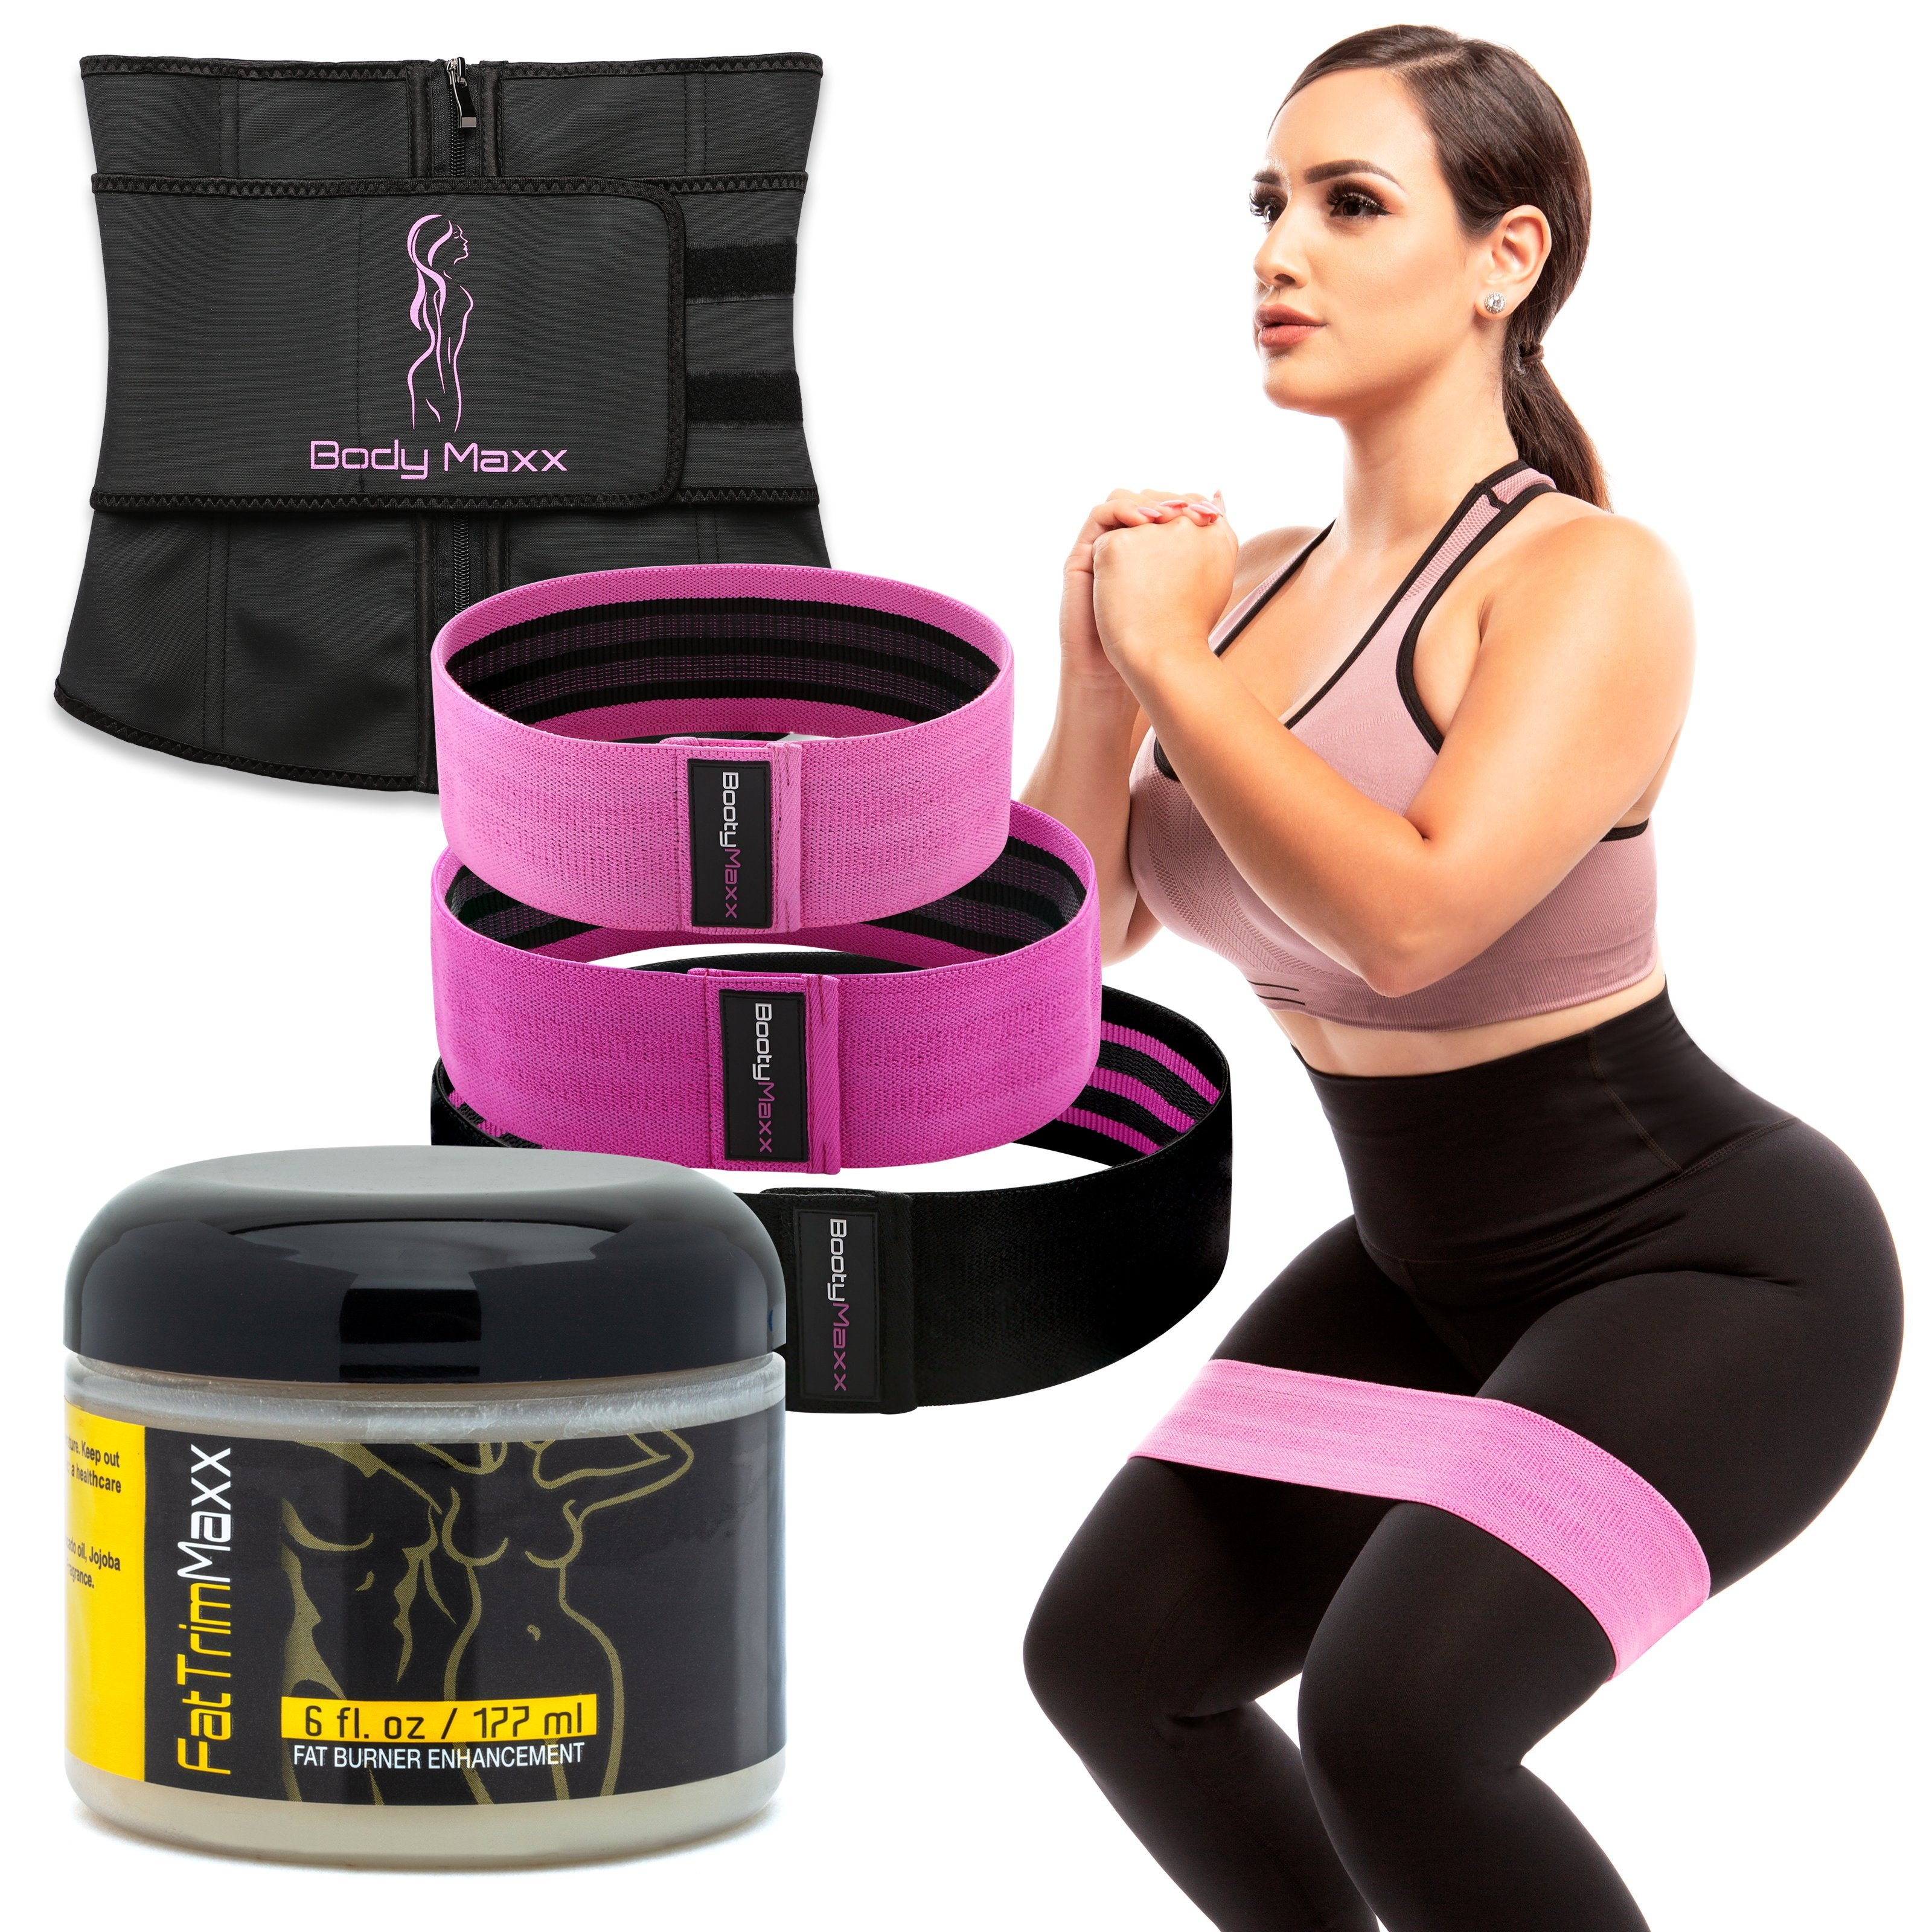 68b56ac4adc Waist Trainer + Fat Trim Cream + Booty Fitness MAXX Kit (3 Bands ...